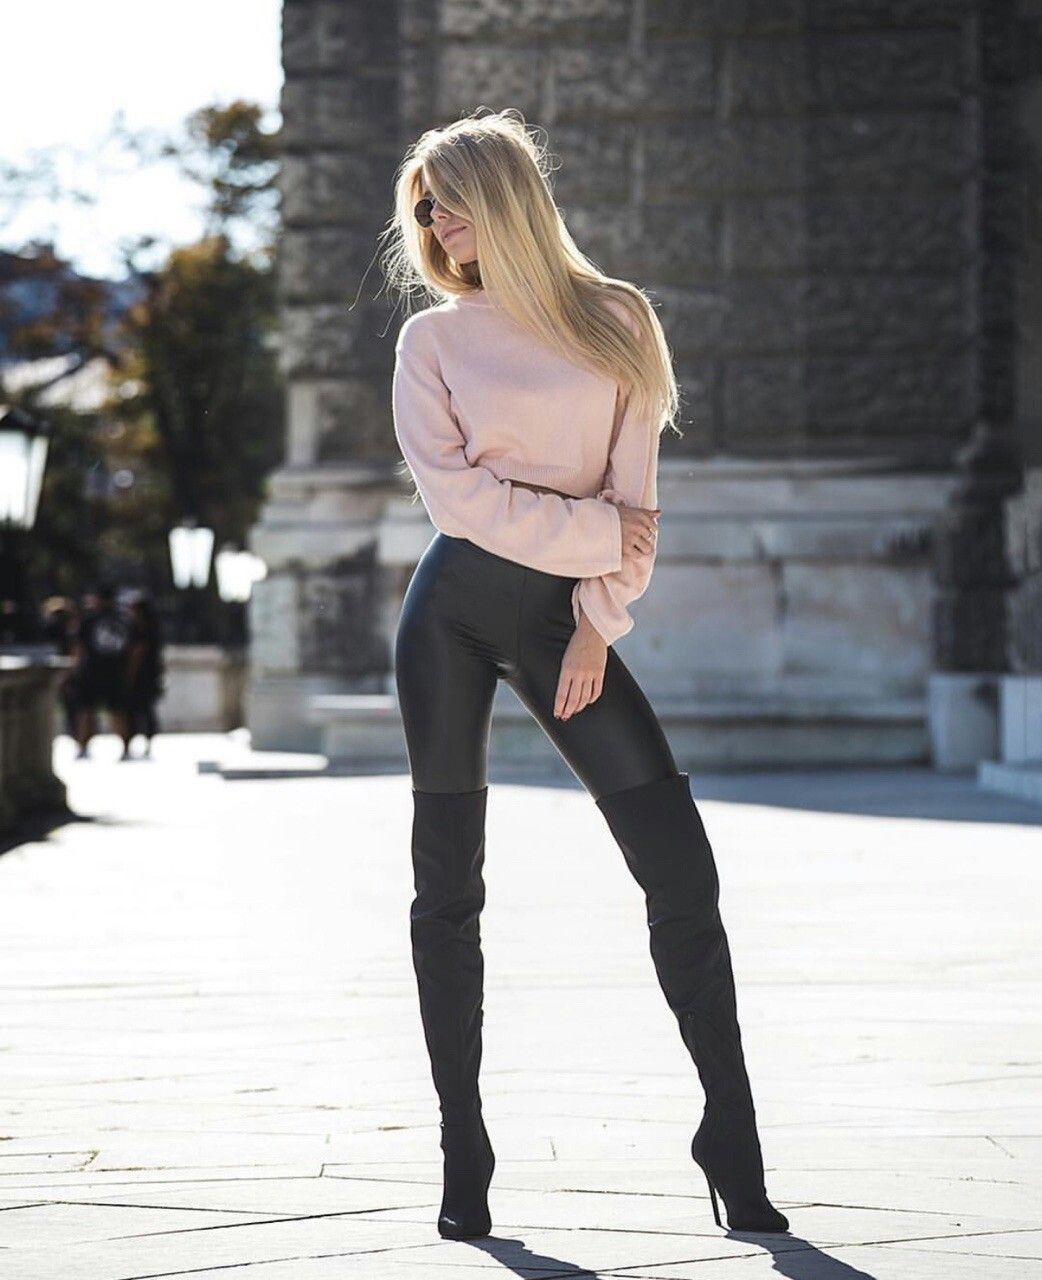 Hot girls in leather pants